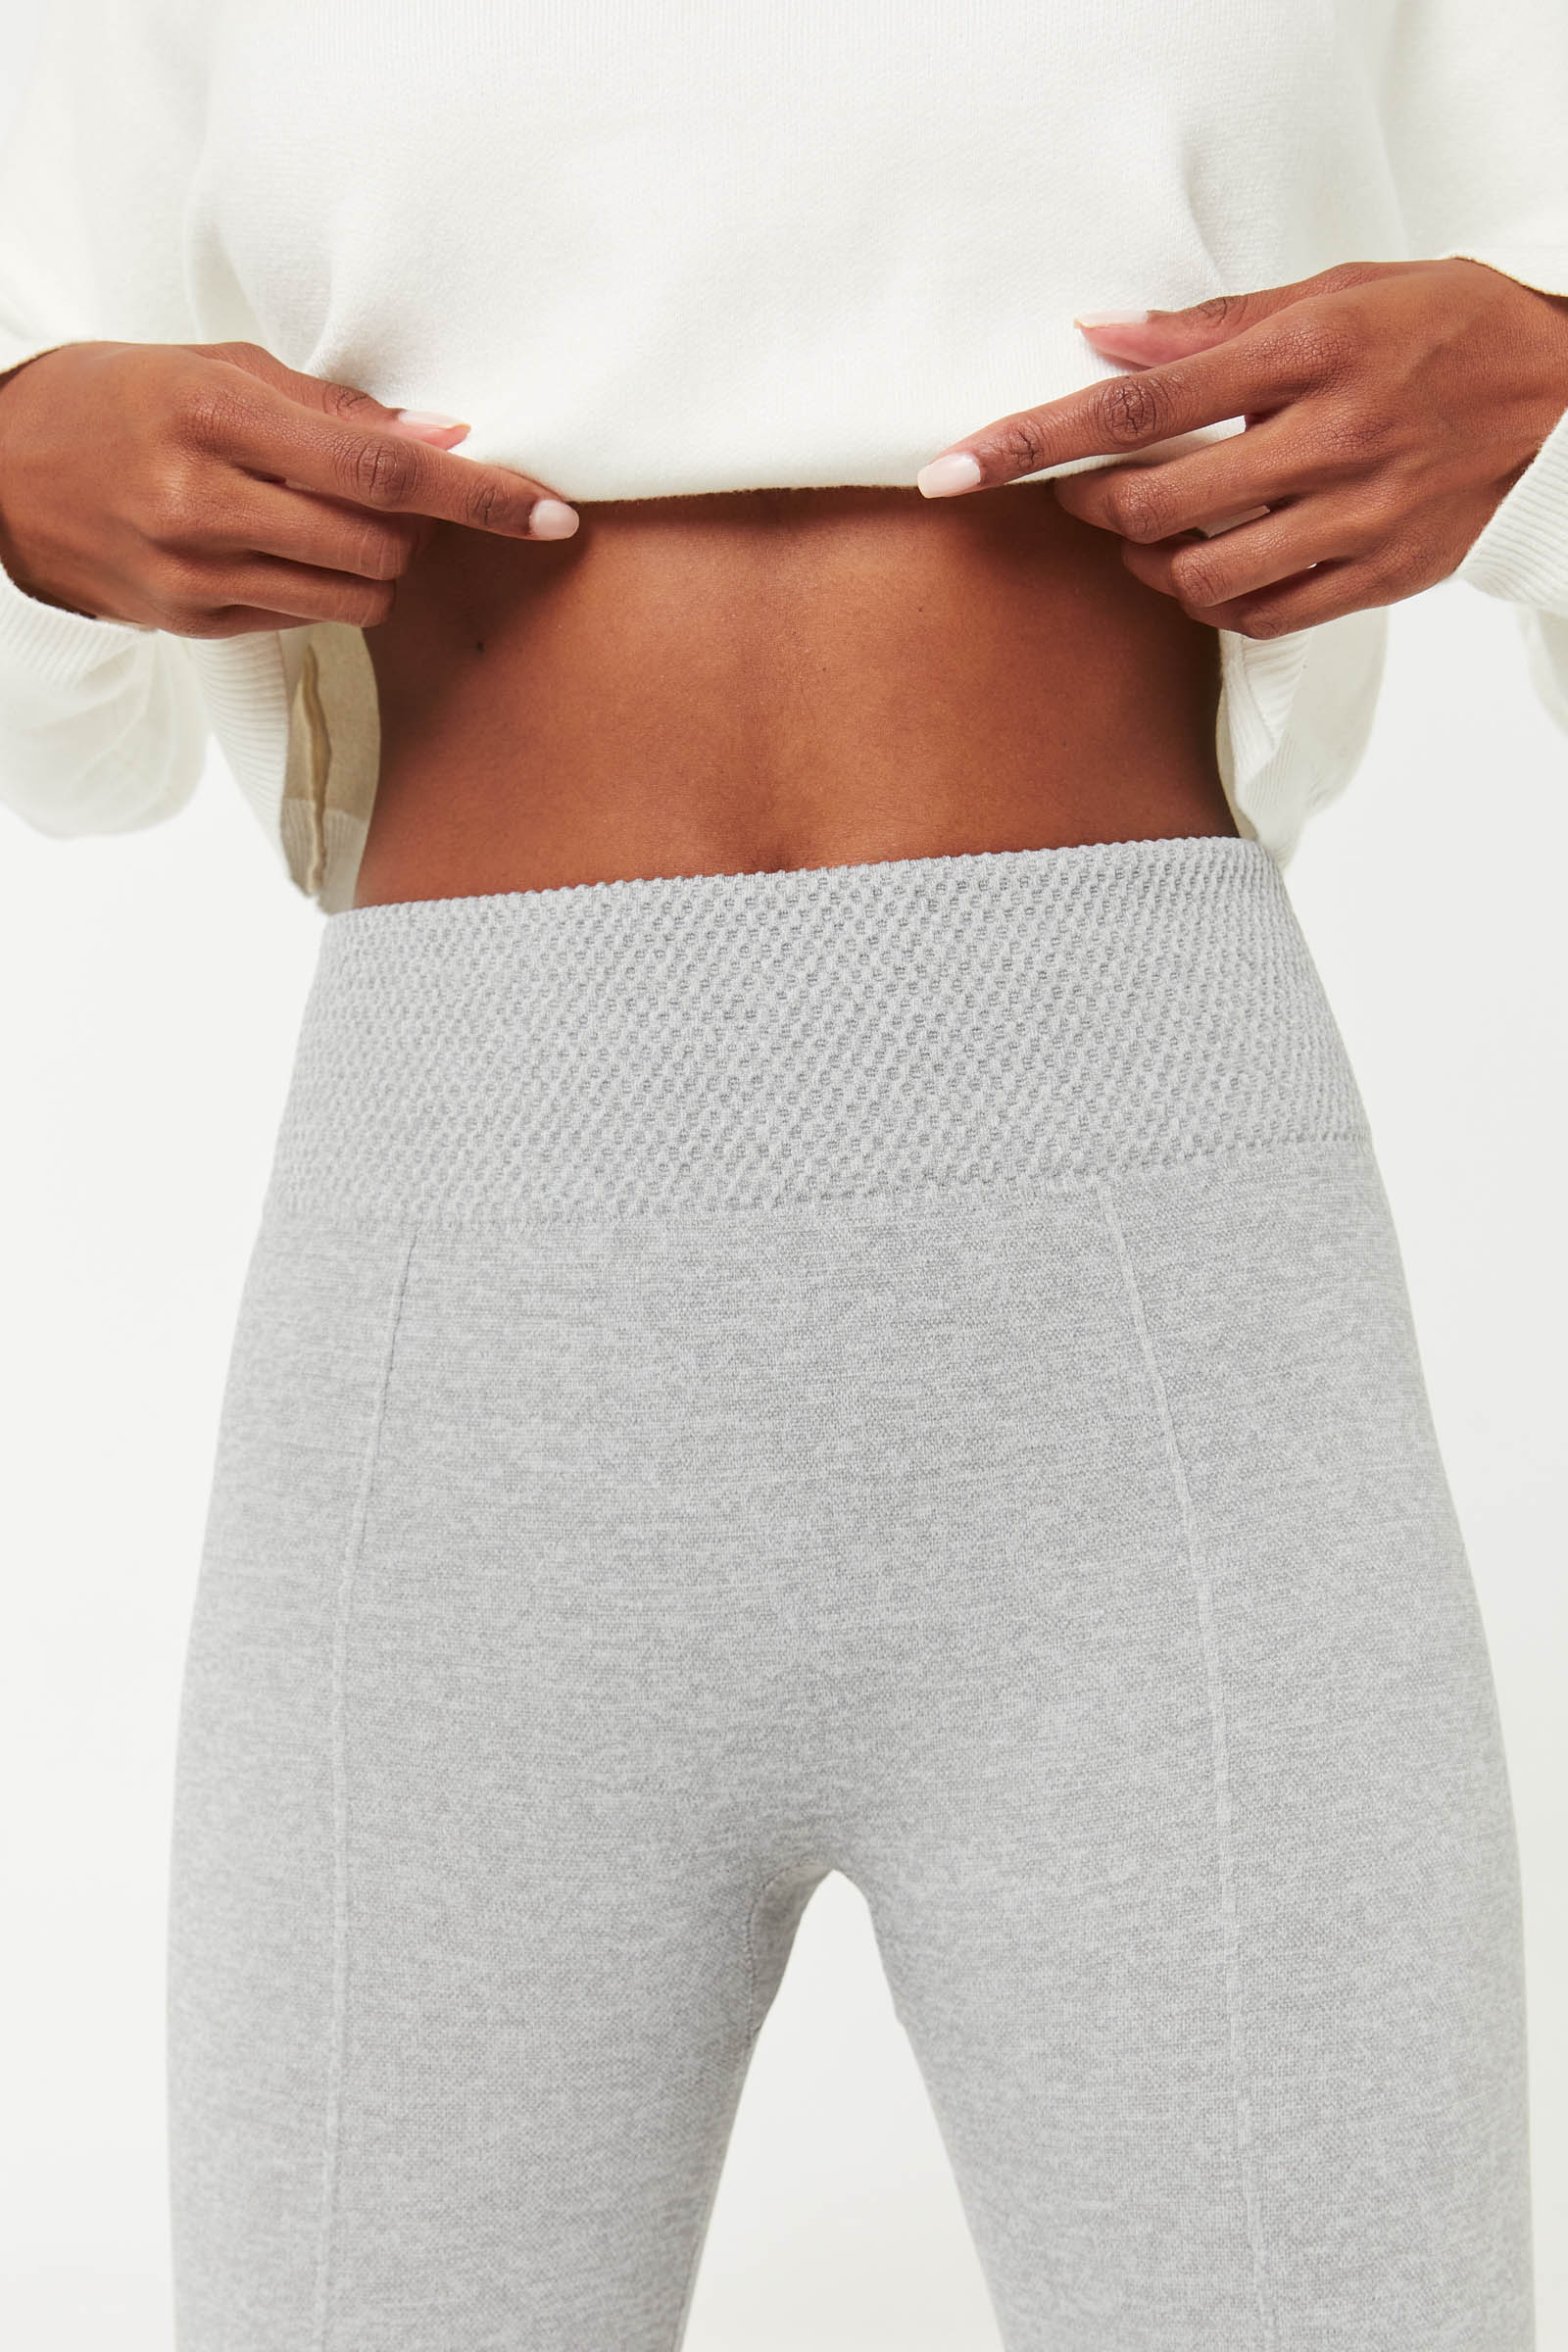 Seamless Leggings with Slimming Waistband